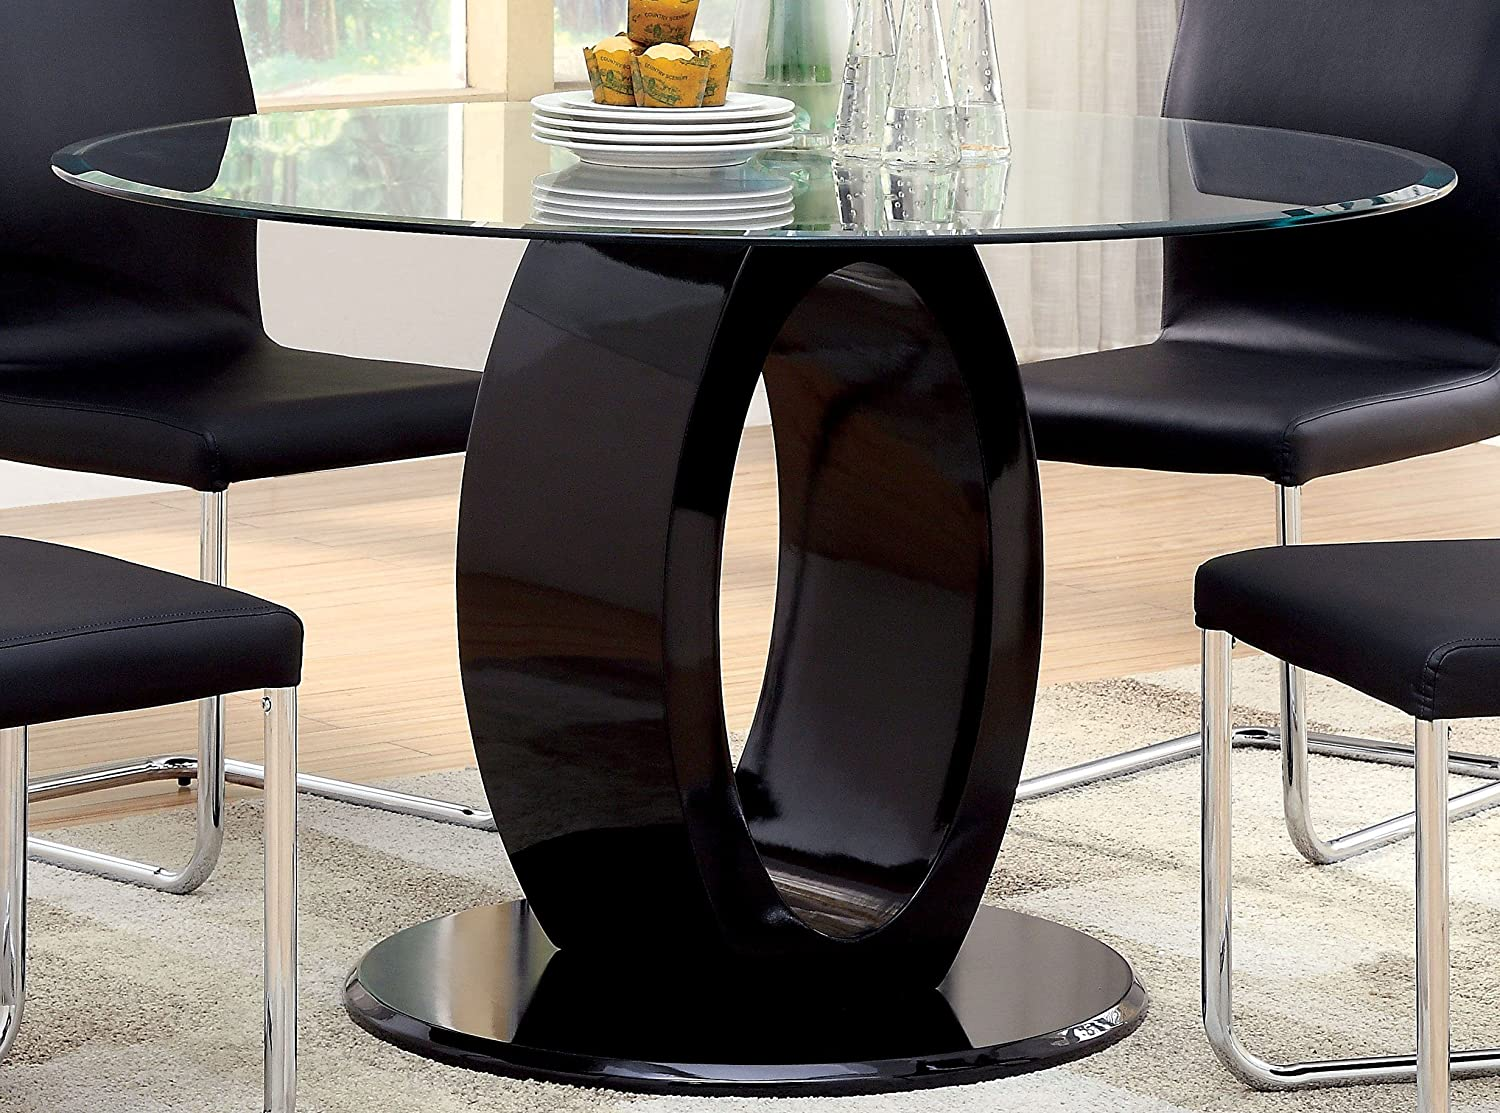 Furniture of America Quezon Round Glass Top Pedestal Dining Table, Black